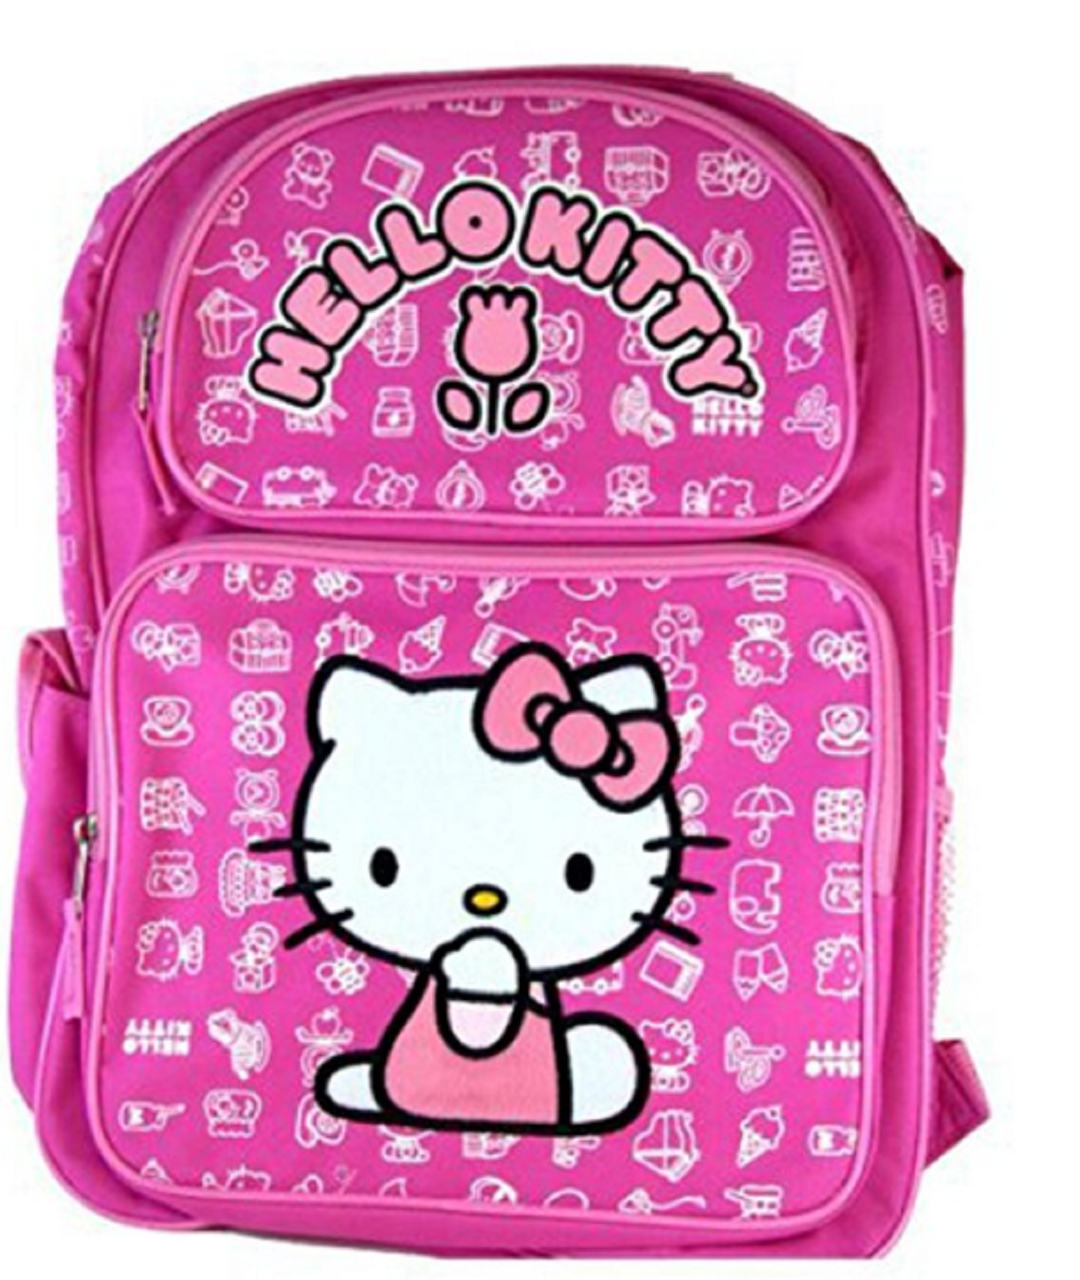 94940c4a9eb7 Backpack - Hello Kitty - Large 16 Inch - White Designs